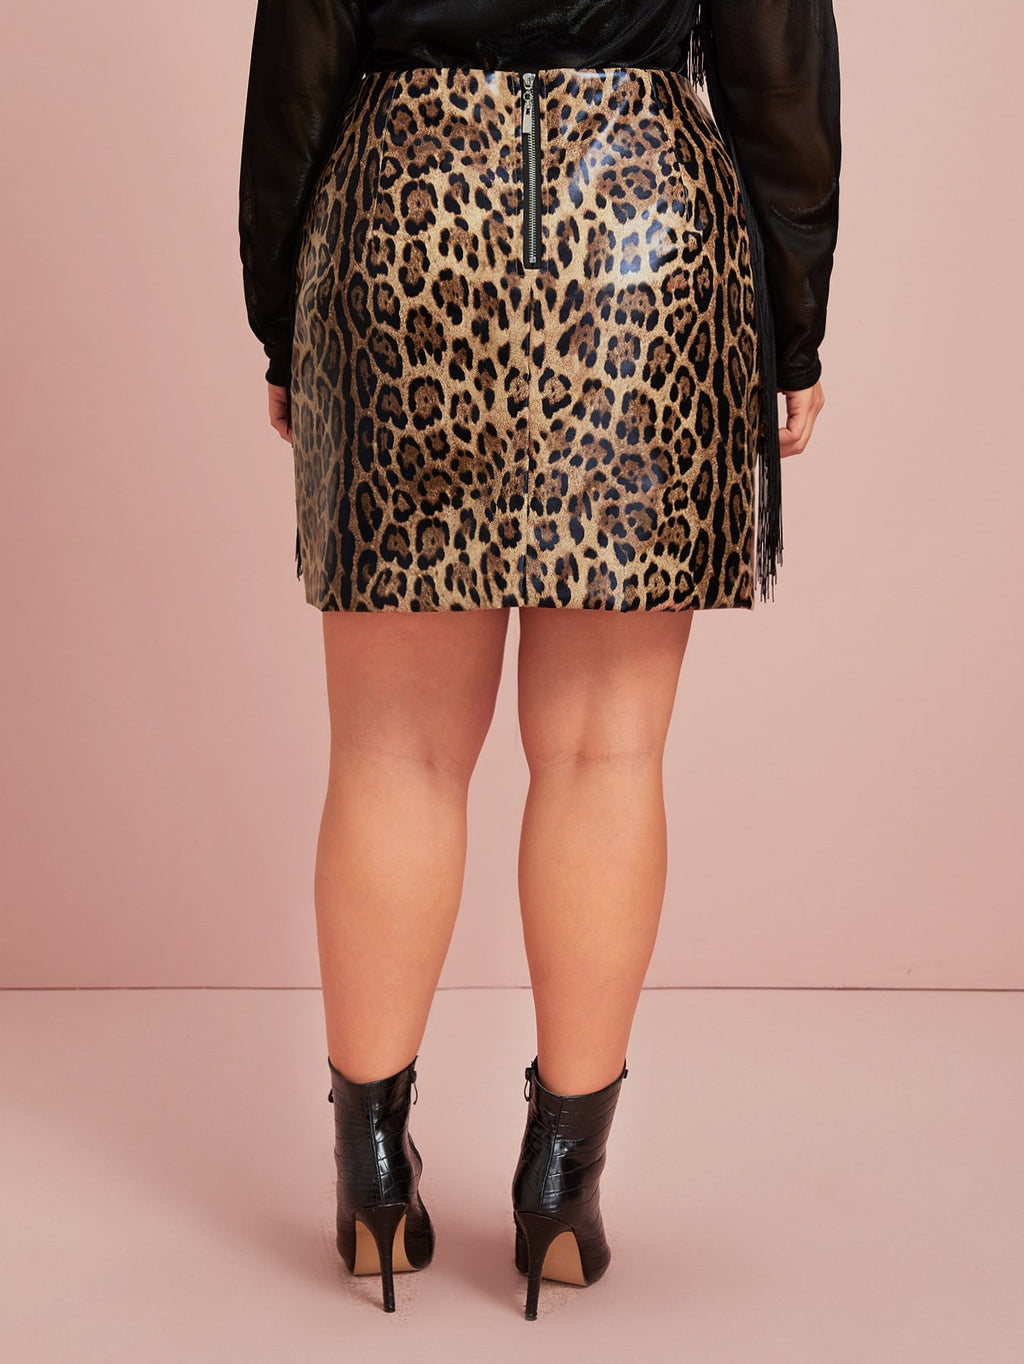 Plus Size Exotic Leopard Print PU Leather Skirt